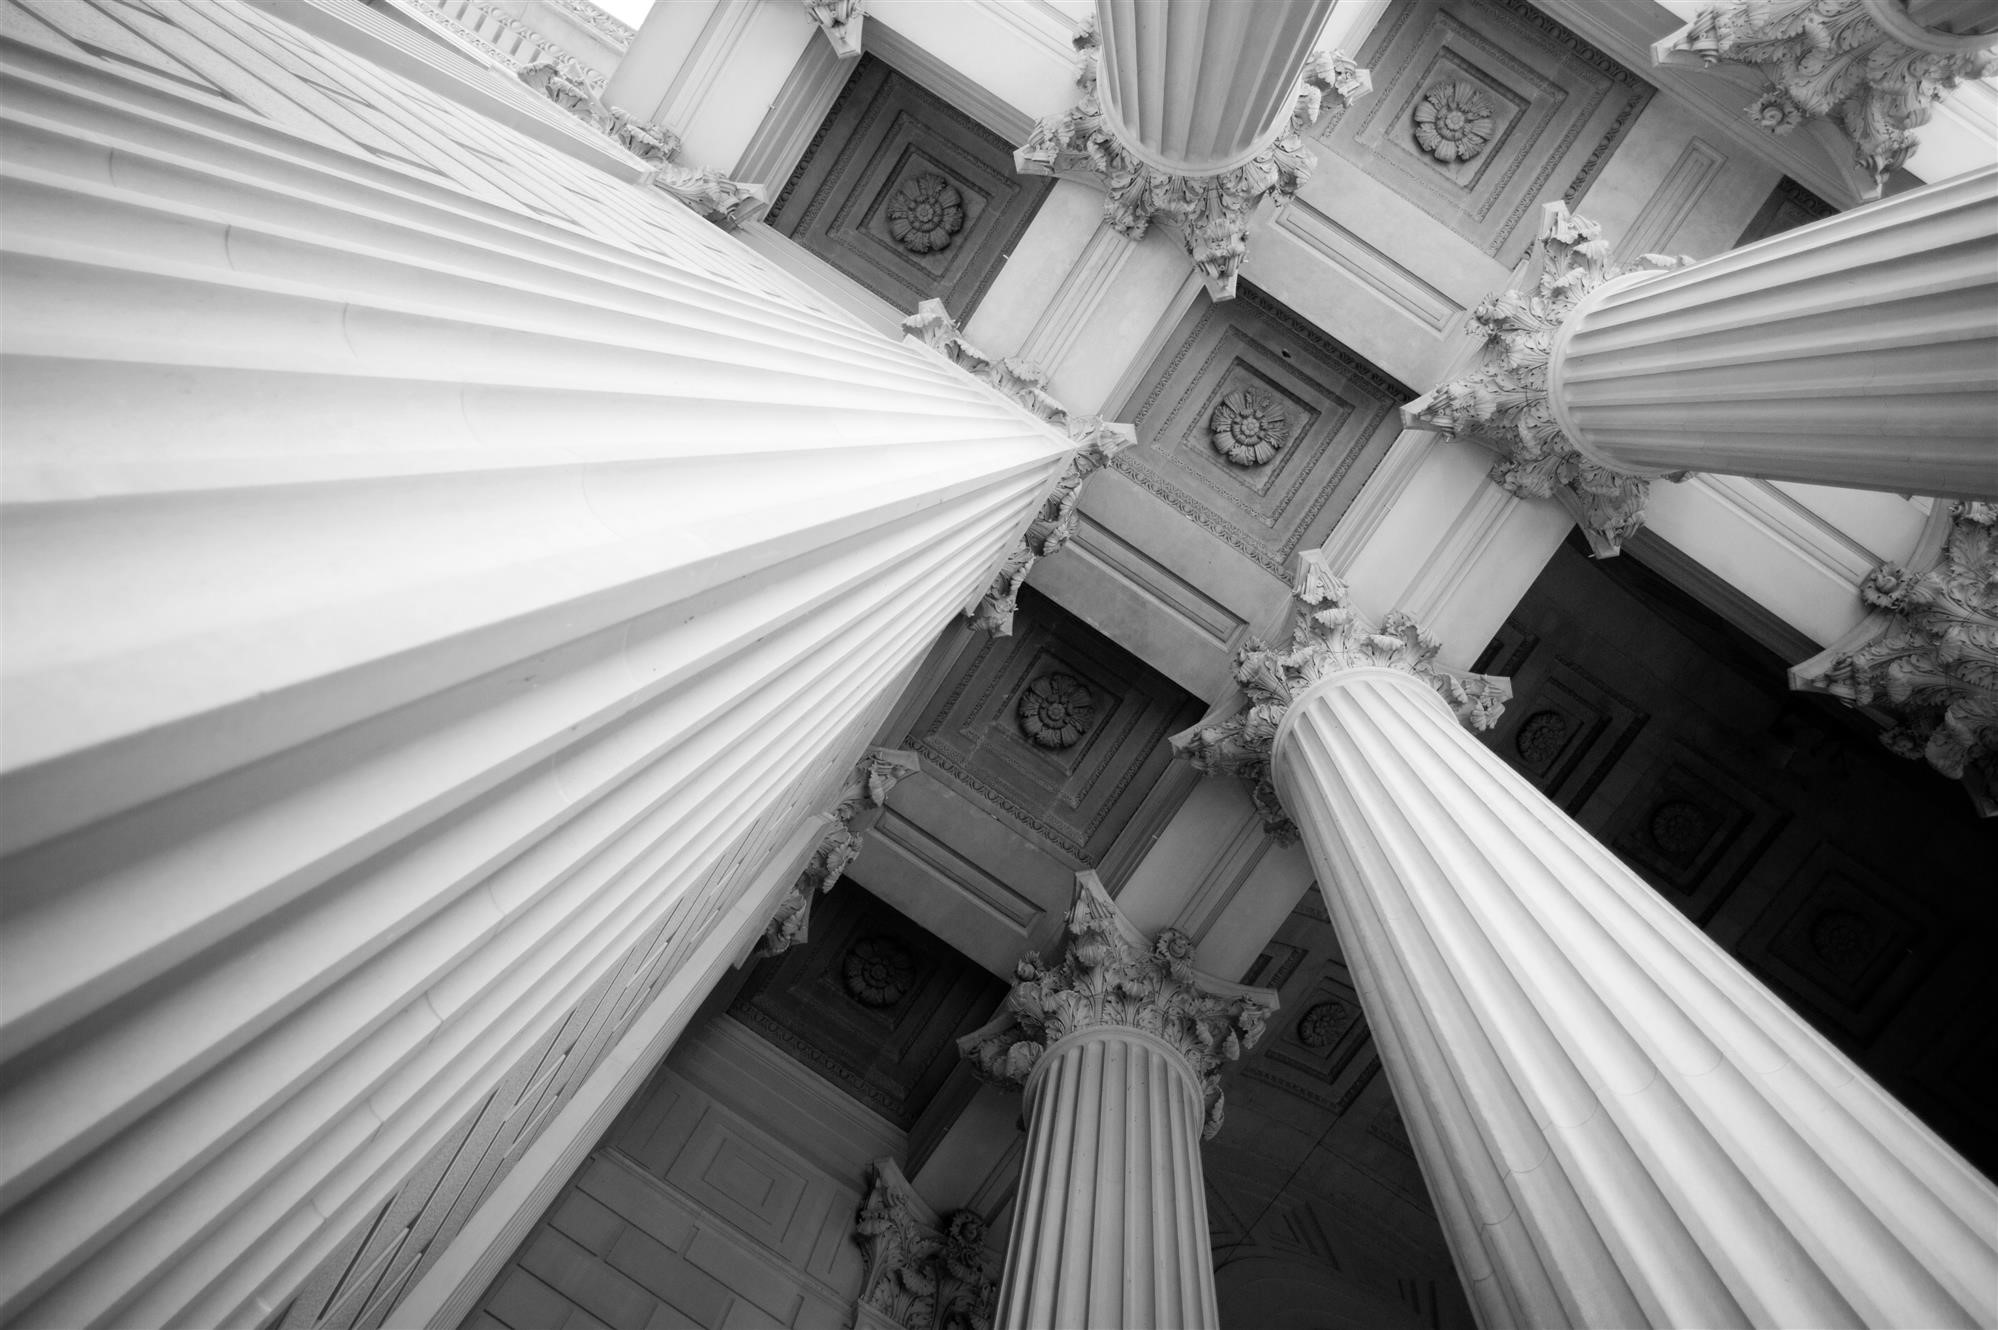 capital_building_columns_ceiling